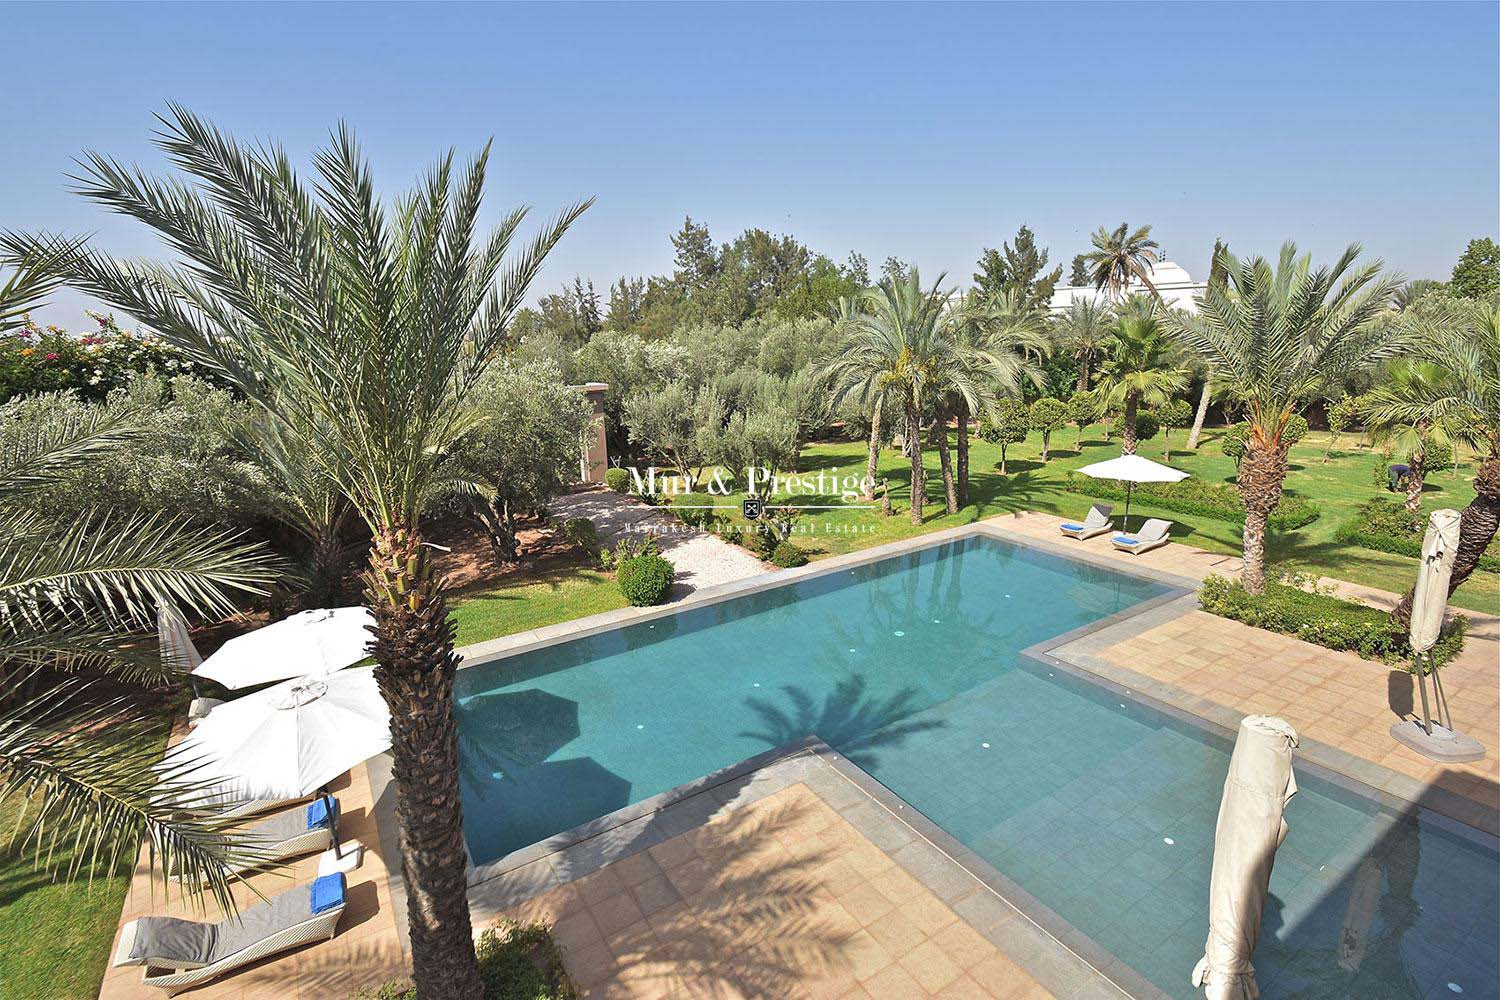 Vente d'une villa contemporaine a Marrakech